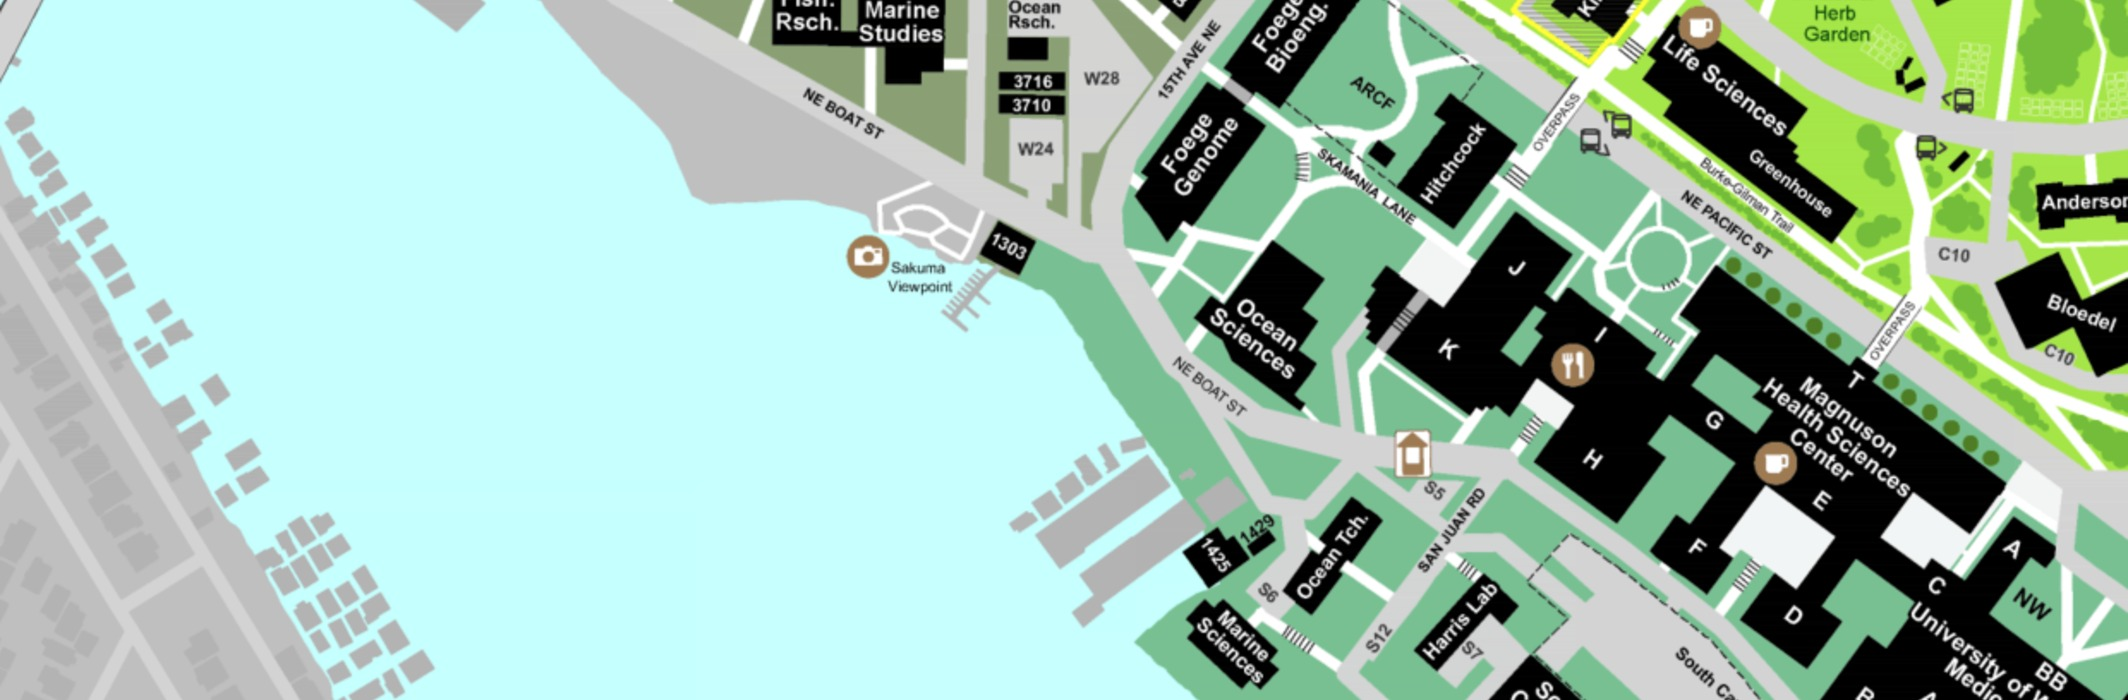 UW Campus Map Image